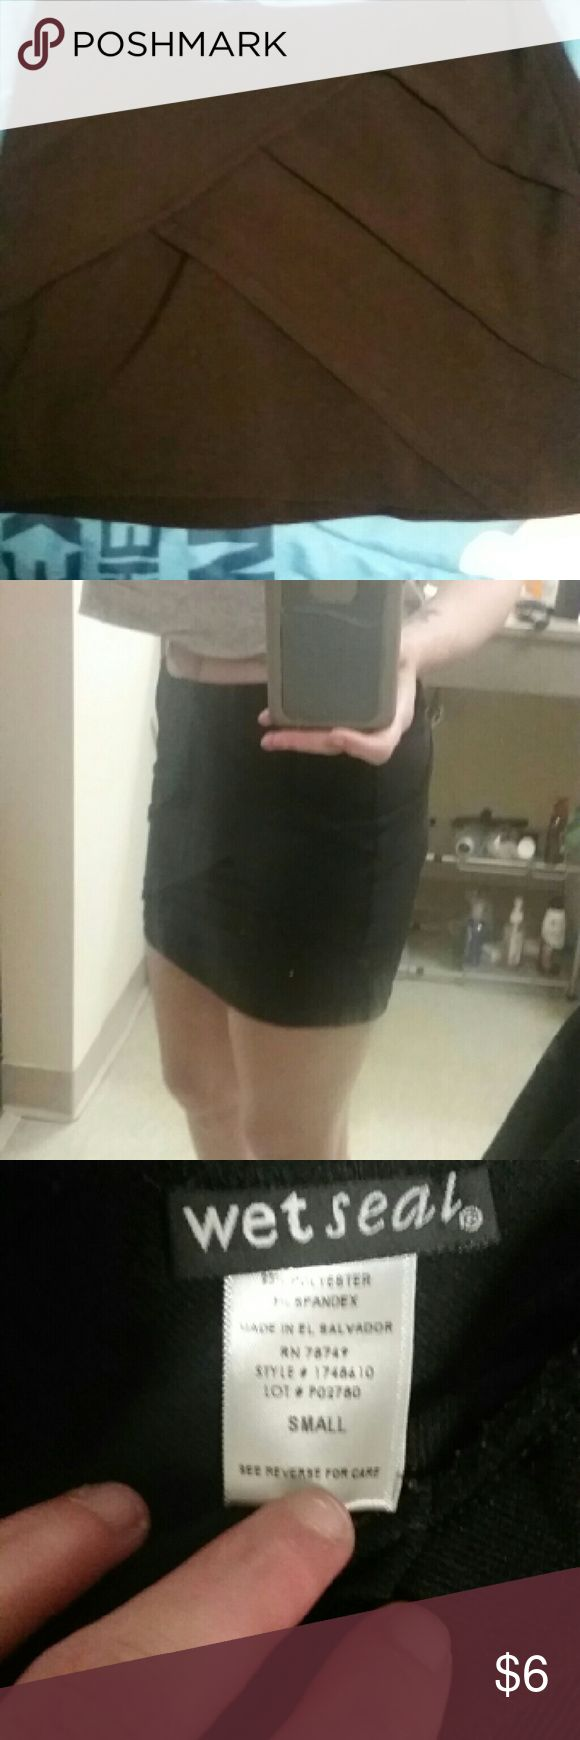 Black skirt Black, short skirt with a  texture of lines going in different directions, tight fitting and not worn many times Wet Seal Skirts